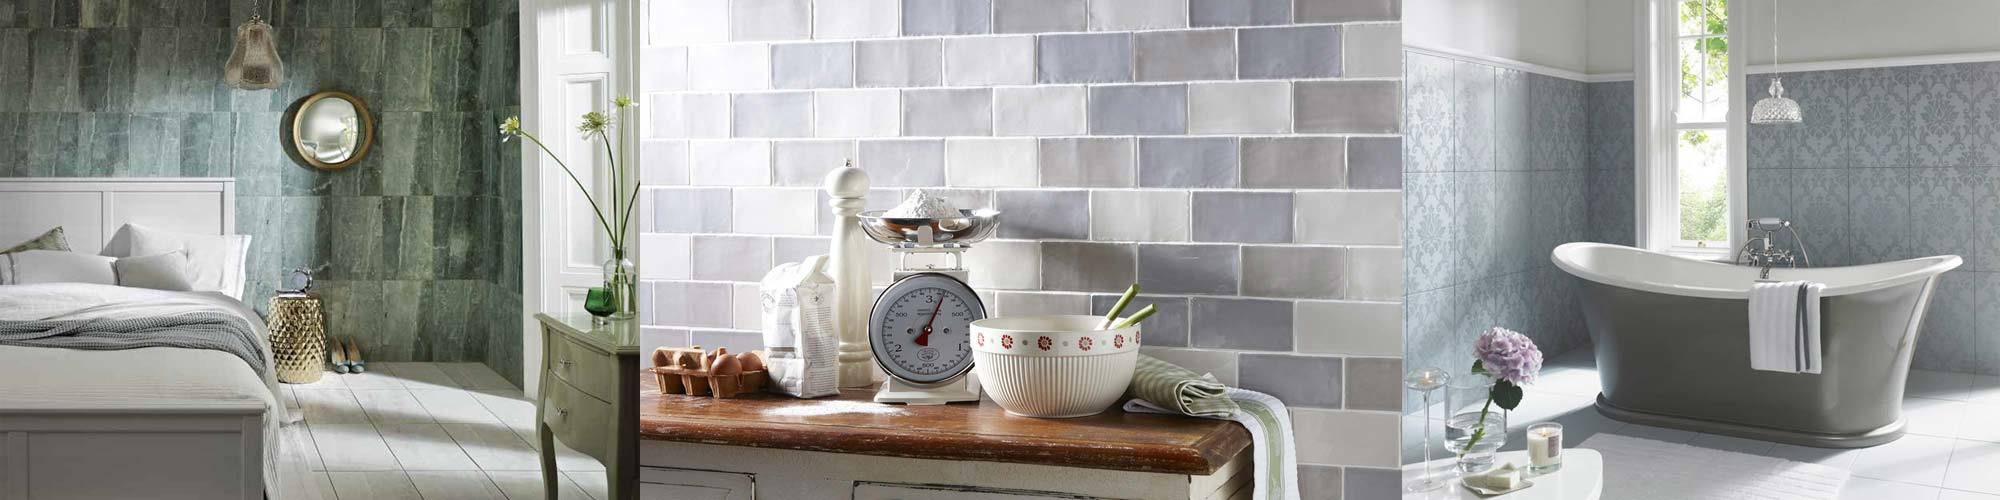 Shades Tiles R Us Contact Hastings